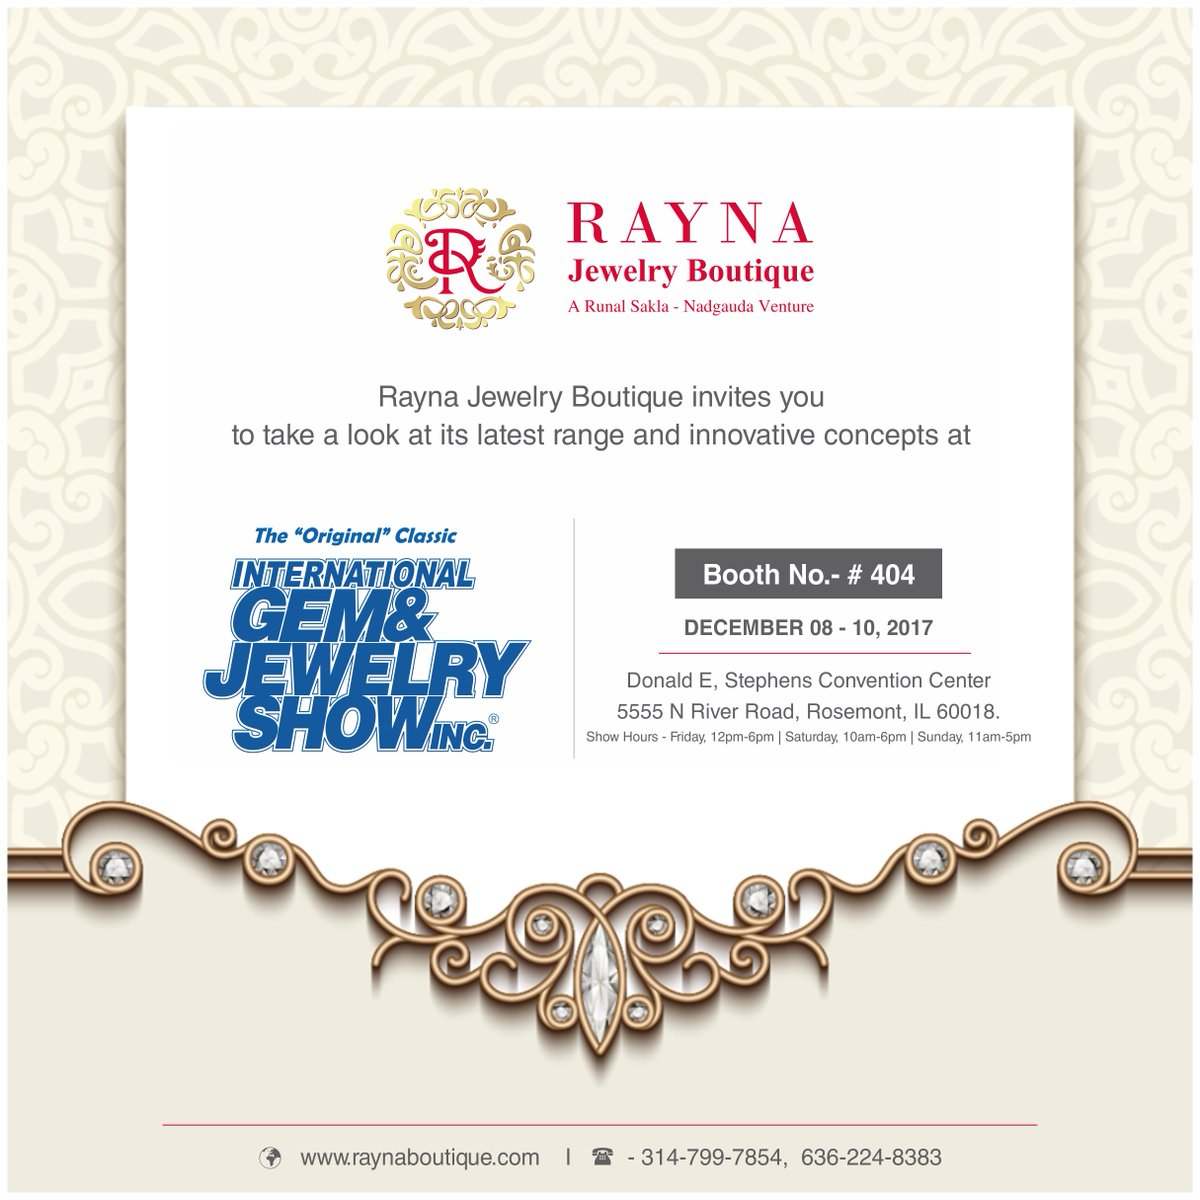 Rayna Boutique Raynaboutique Twitter